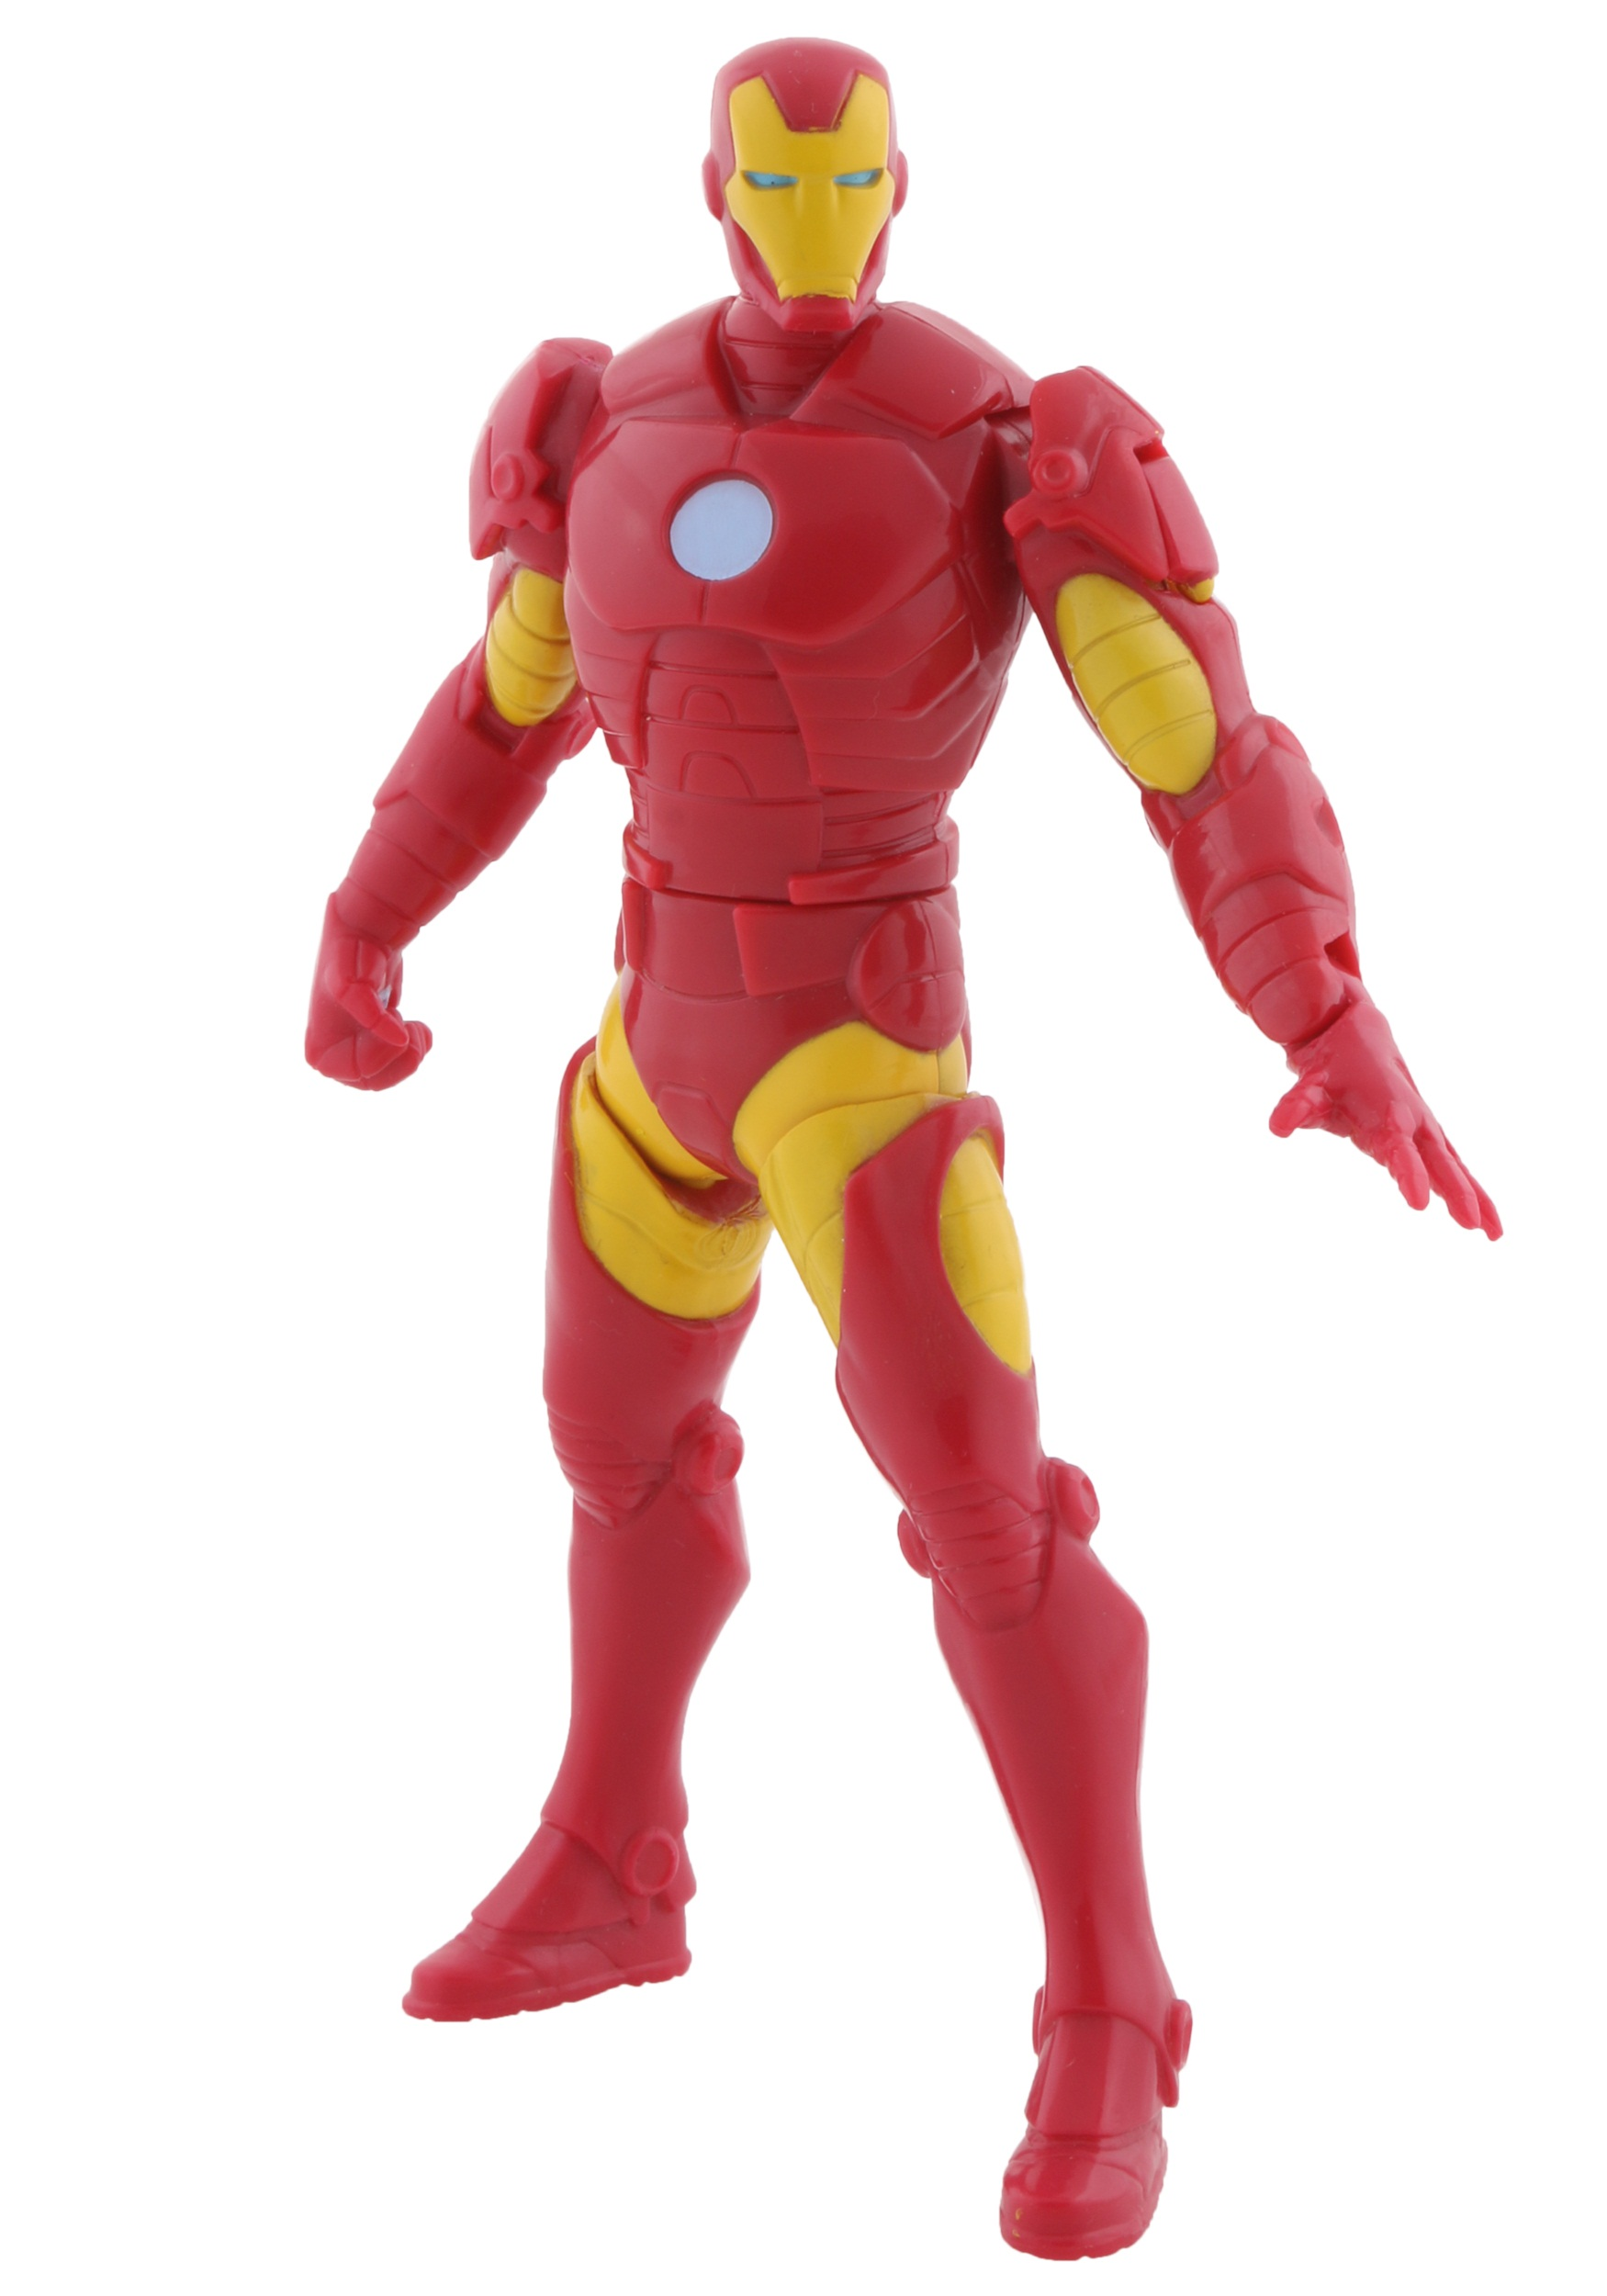 Avengers Assemble Mighty Battlers Iron Man Figure EE7398030300